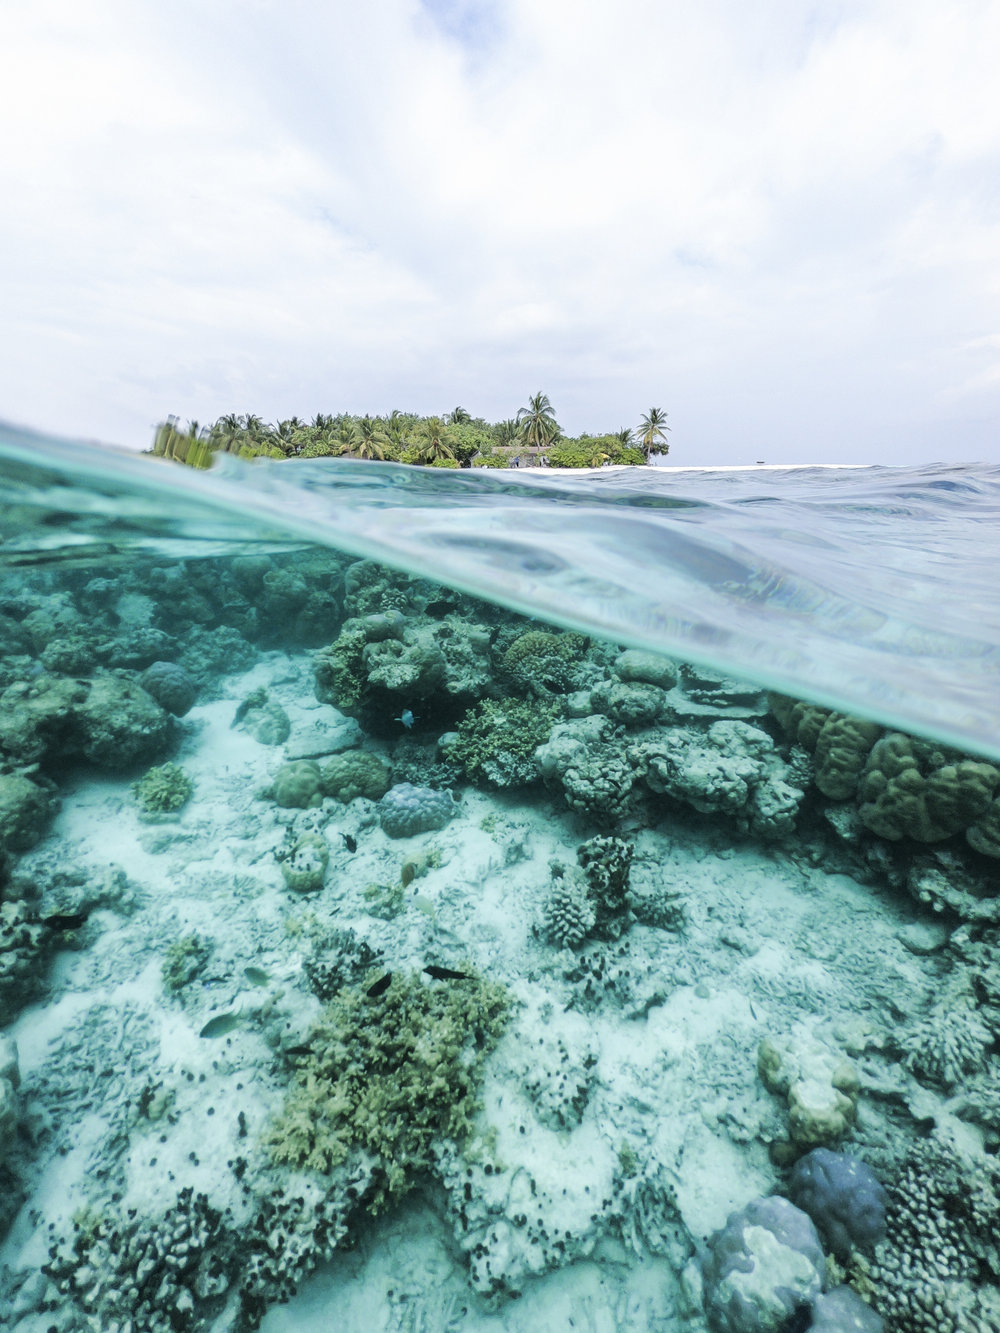 Coral reefs provide the foundation for the livelihoods of people living on island nations. Photo credit: Ishan